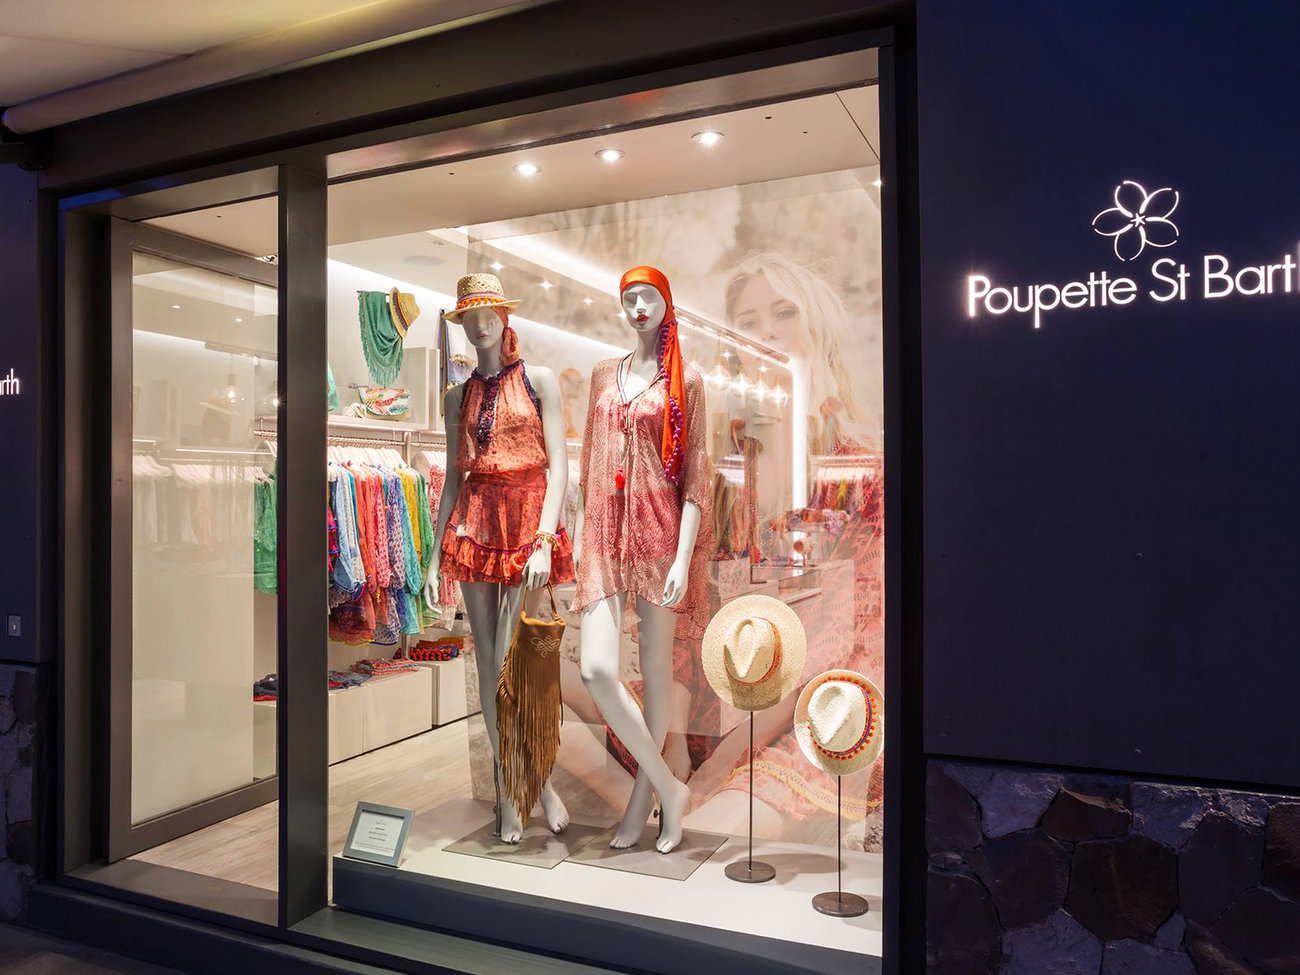 Poupette Clothing Store in St. Barts